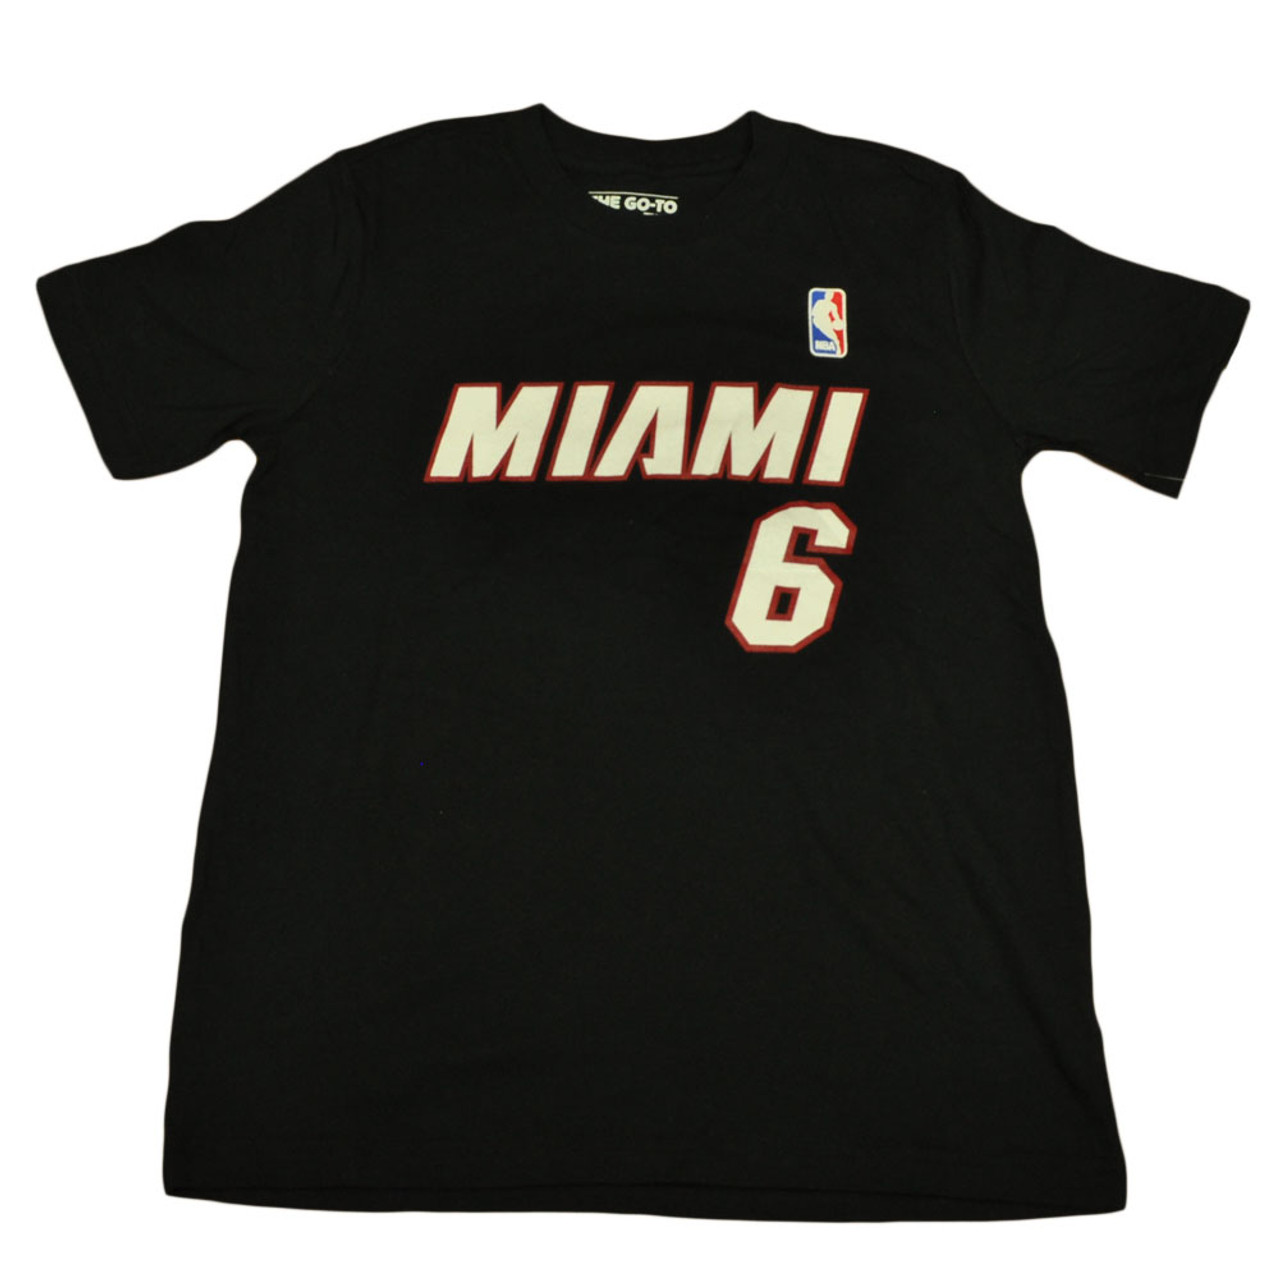 info for d465f d896d Adidas NBA Miami Heat Youth Name And Number Lebron James Tshirt Tee Medium  10/12